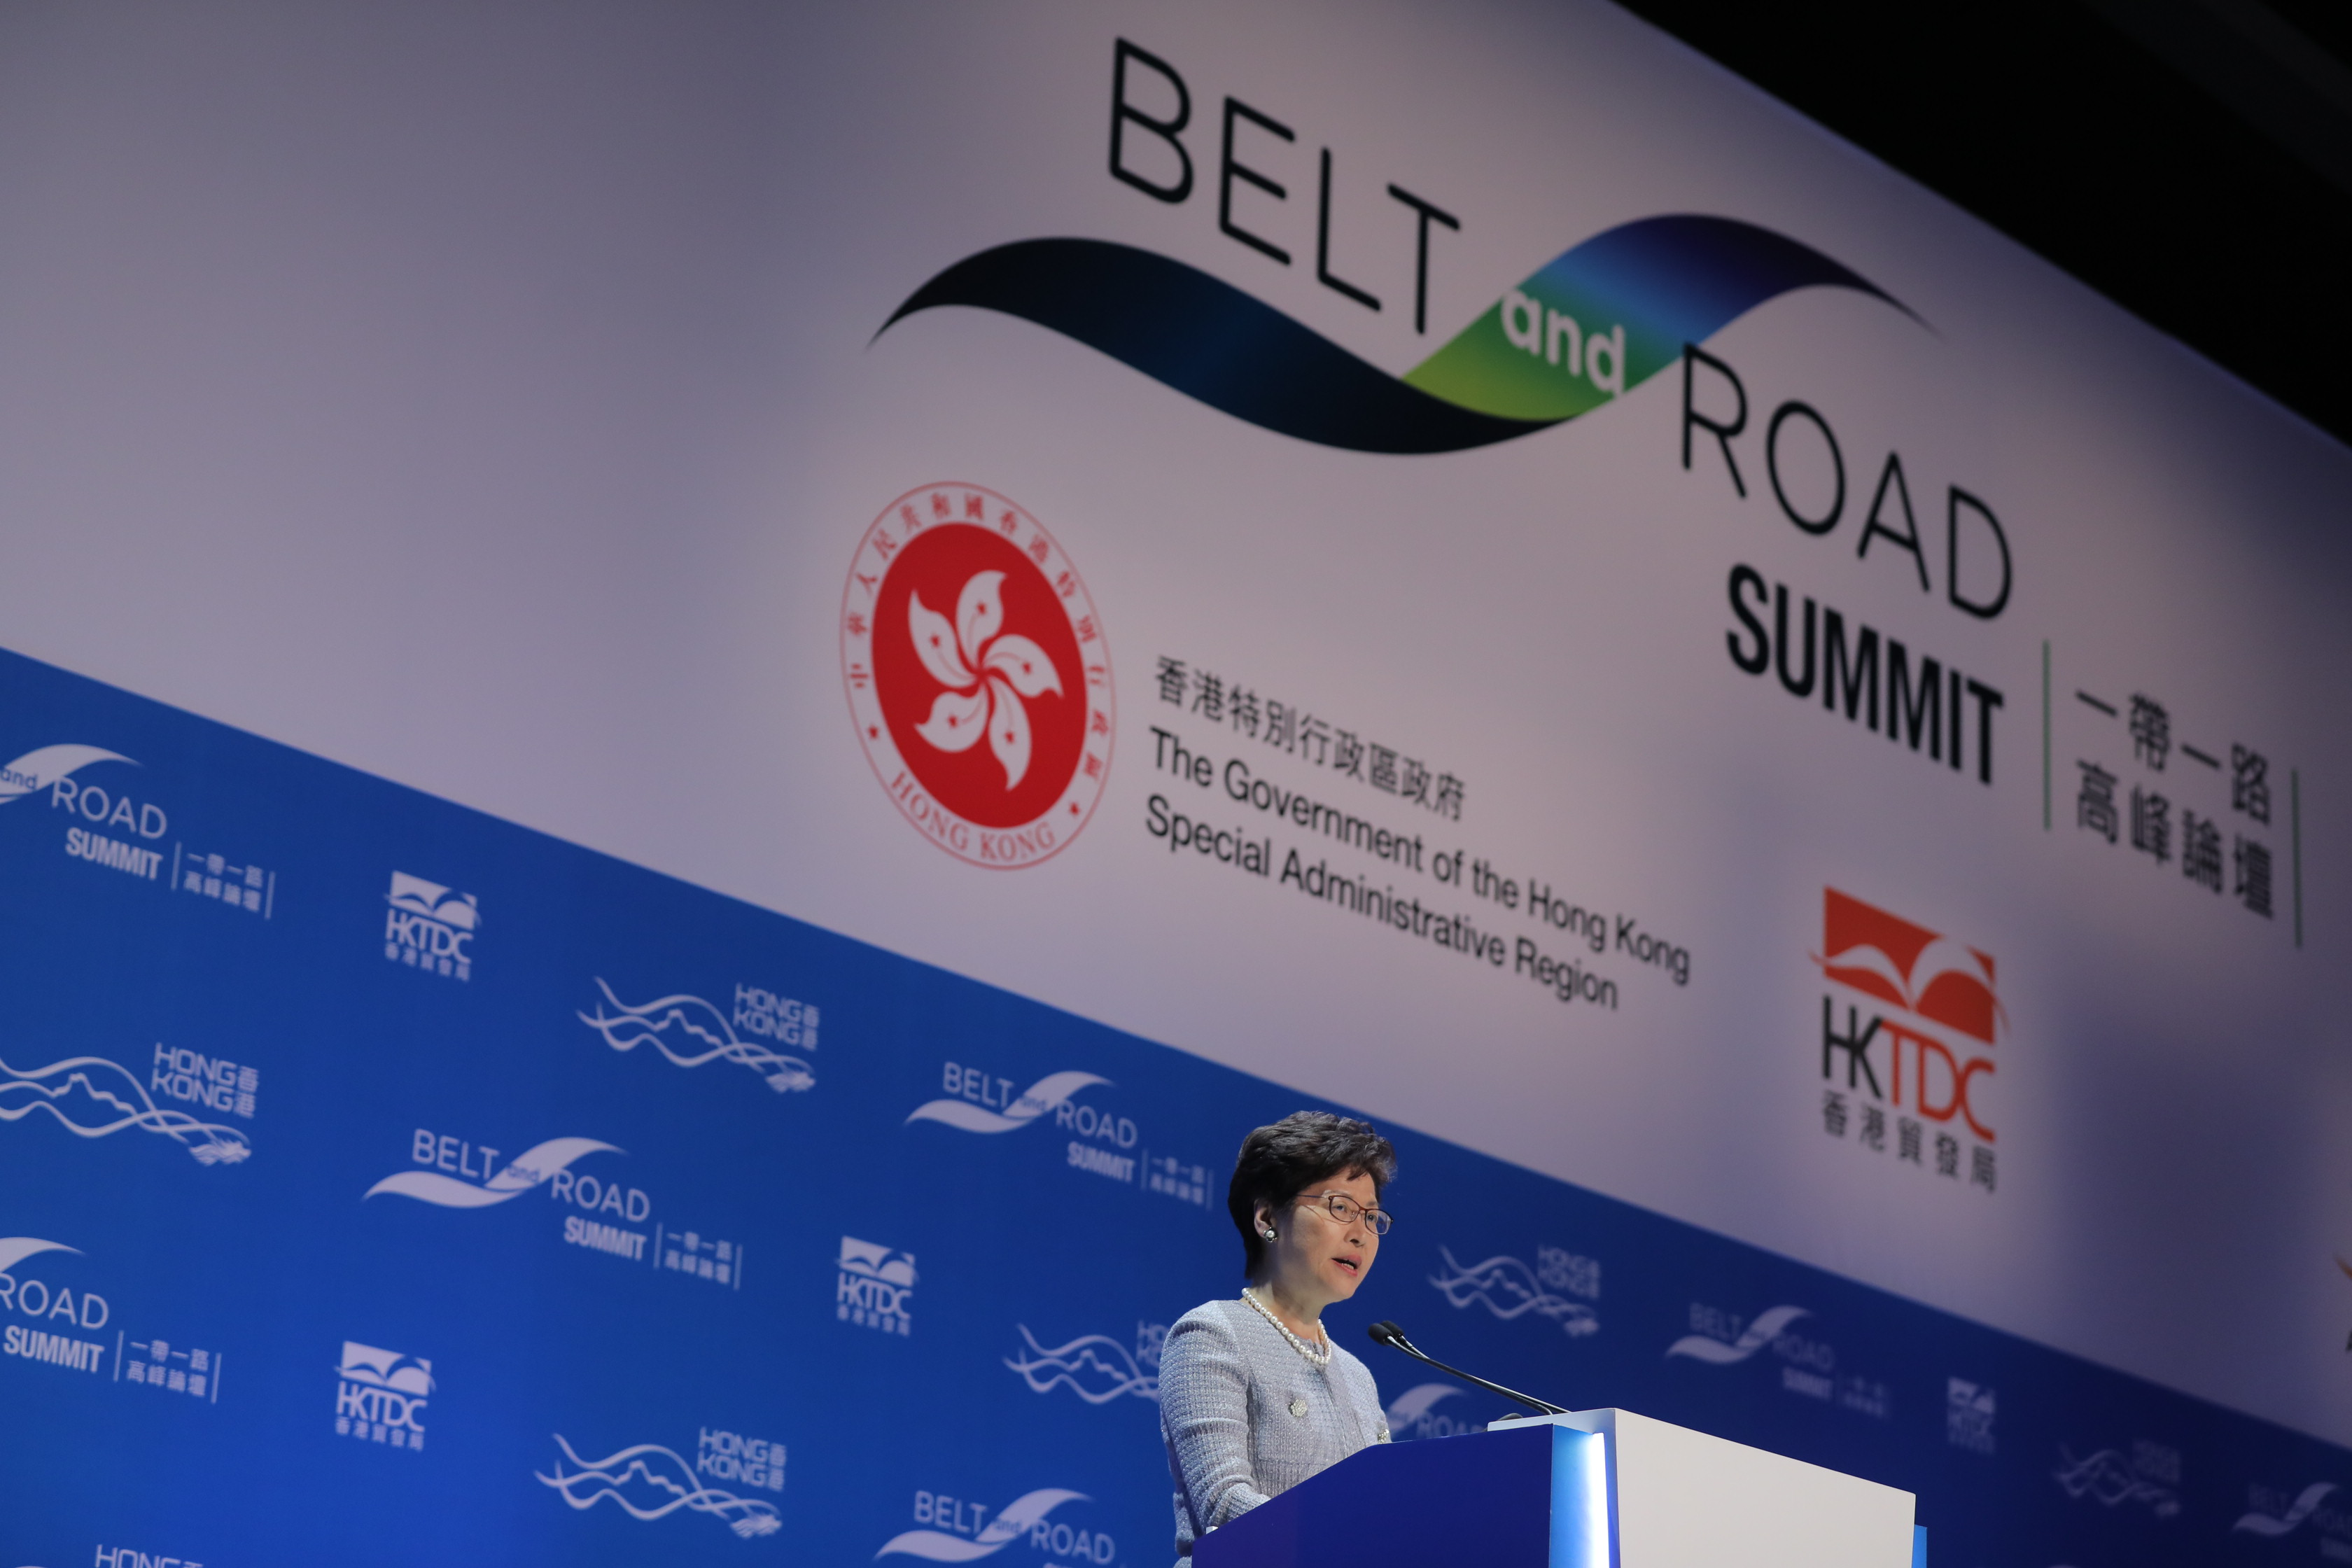 The Belt & Road Summit was successfully held at the HKCEC, with participation of over 5,000 delegates from many countries and regions.